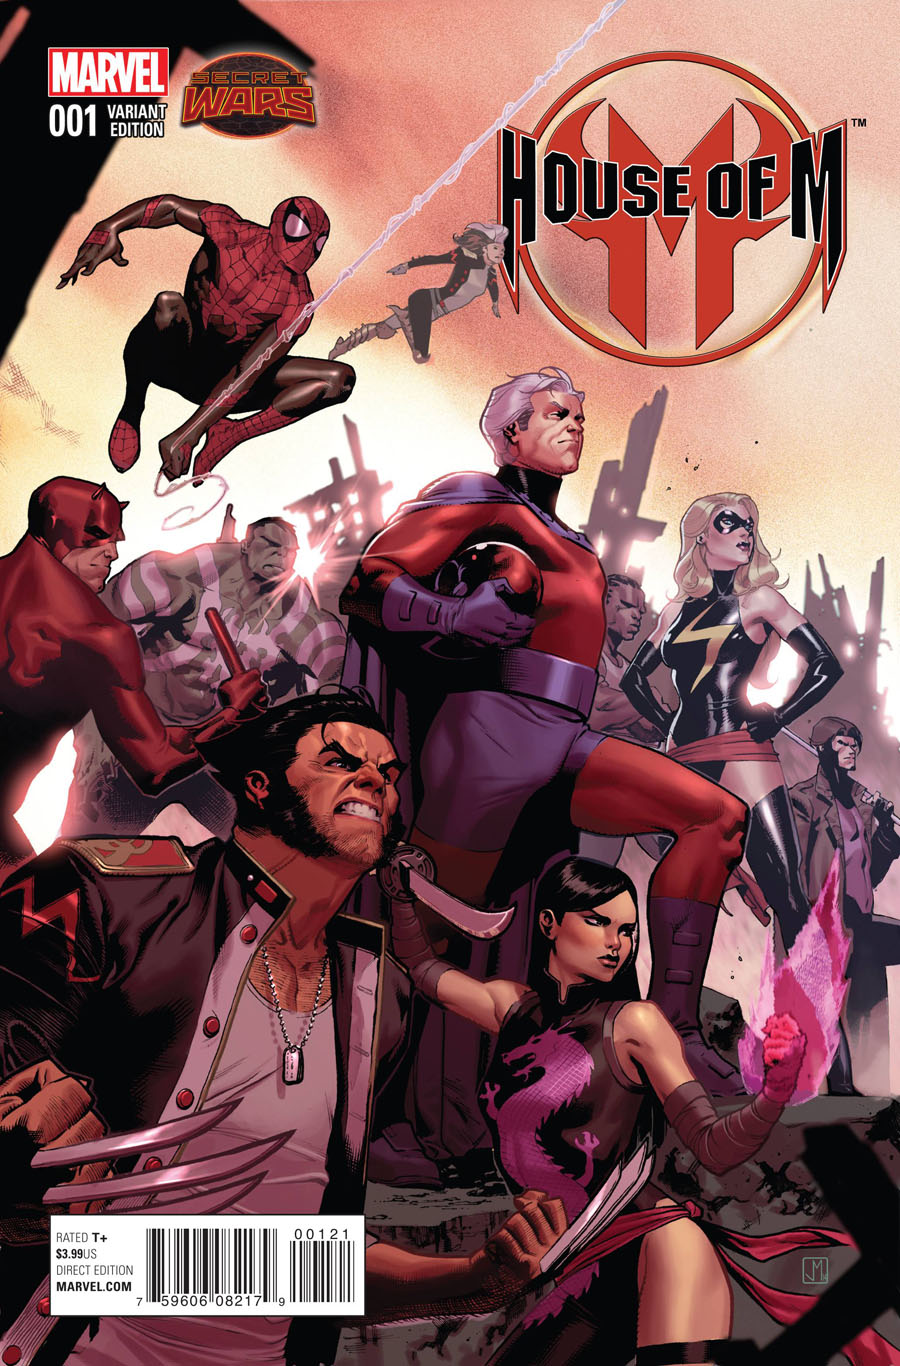 House Of M Vol 2 #1 Cover D Incentive Jorge Molina Promo Variant Cover (Secret Wars Warzones Tie-In)